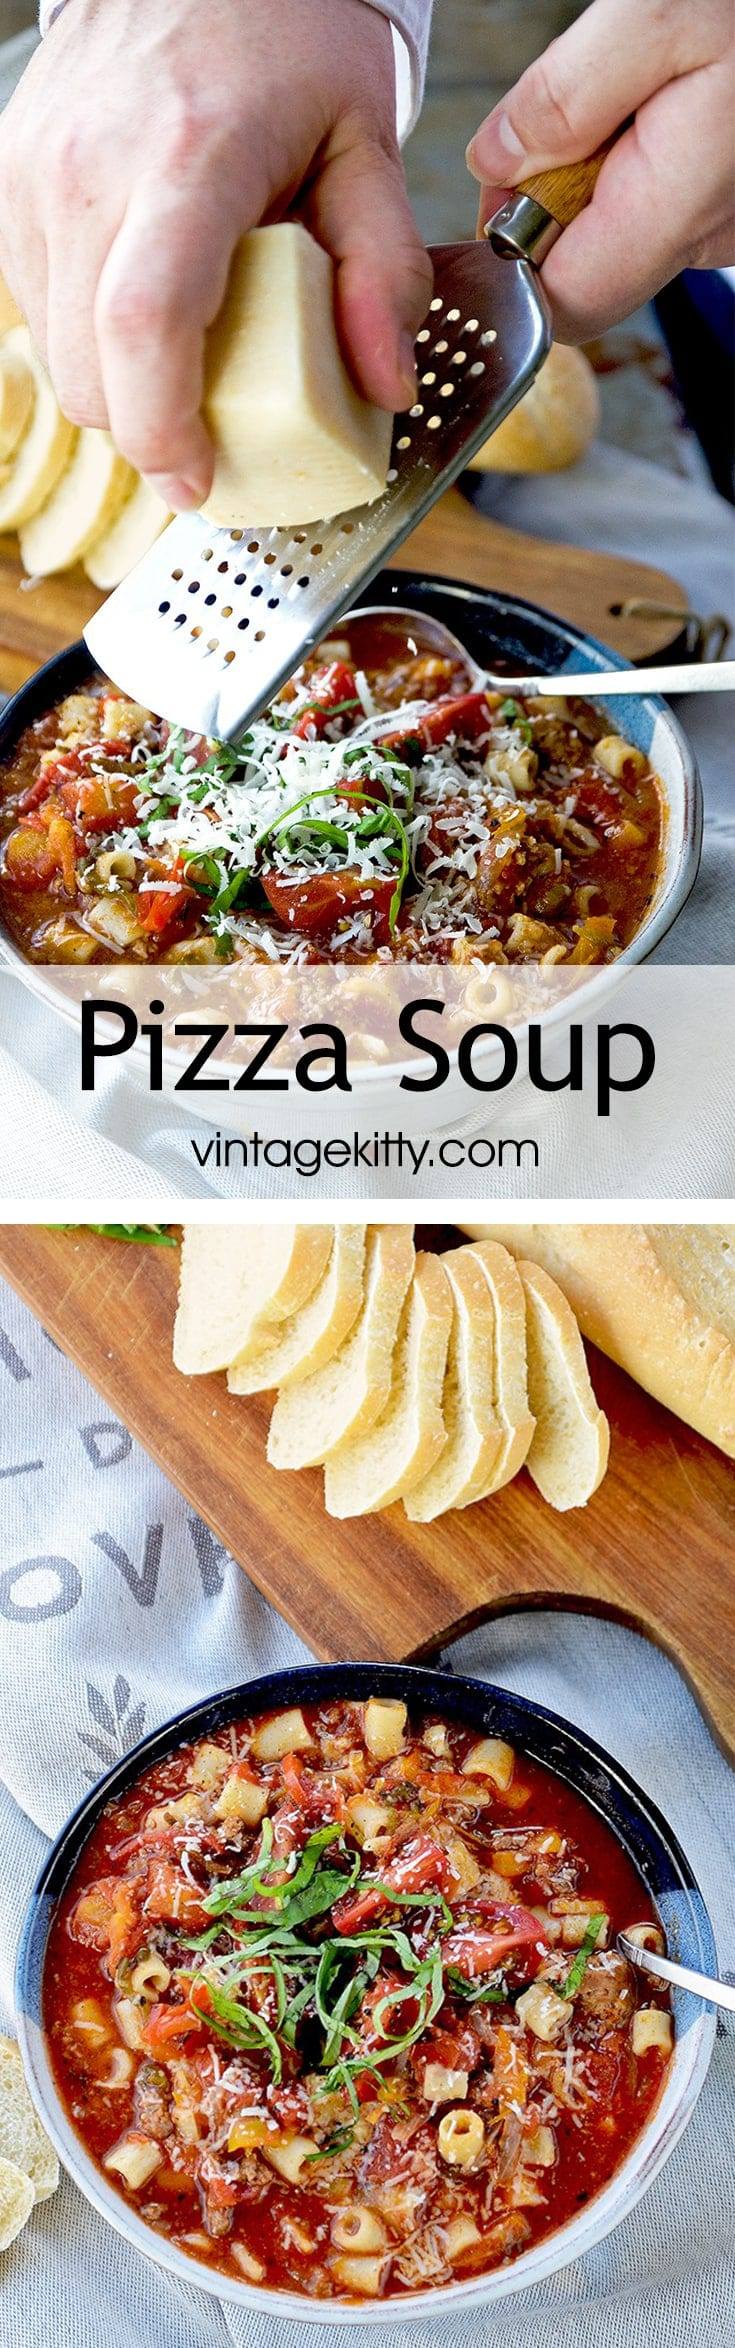 Pizza Soup is a hearty, robust tomato soup filled with Italian flavors and ingredients. It's supremely delicious and can be served as an appetizer or as an entree with a side salad or grilled cheese sandwich.